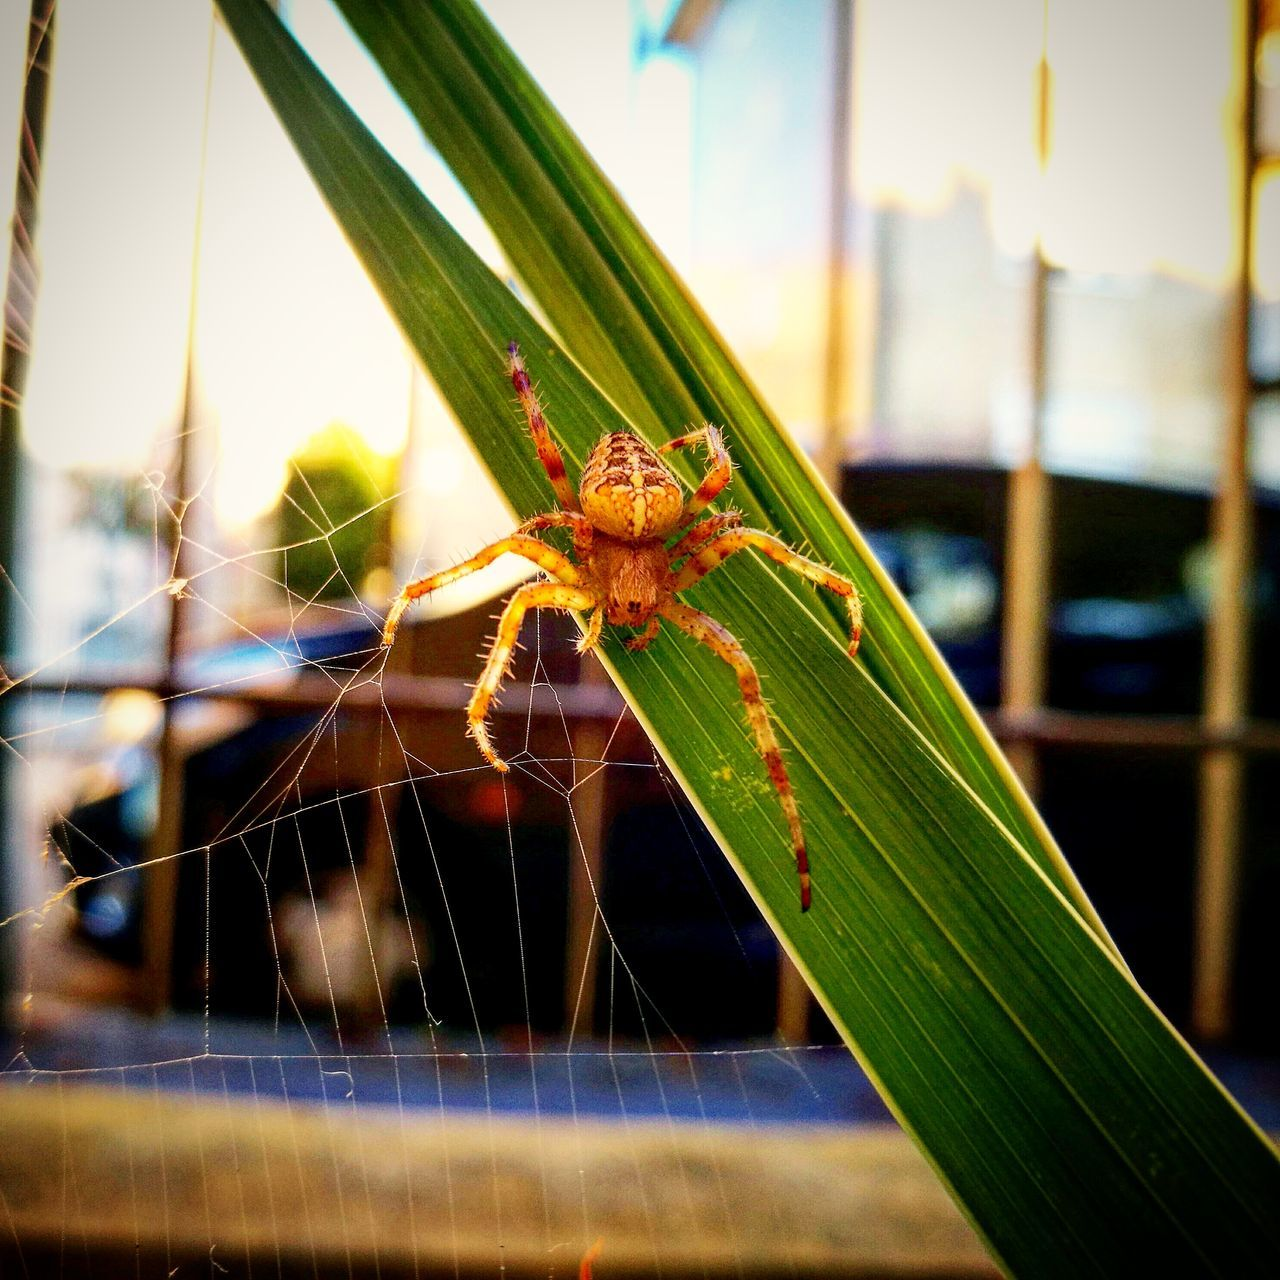 Spider Nature Animals In The Wild Close-up One Animal Insect No People Outdoors Web Beauty In Nature Animal Wildlife Spider Web Ragno Garden Photography Garden Giardino Animal Themes City Wildlife Spider